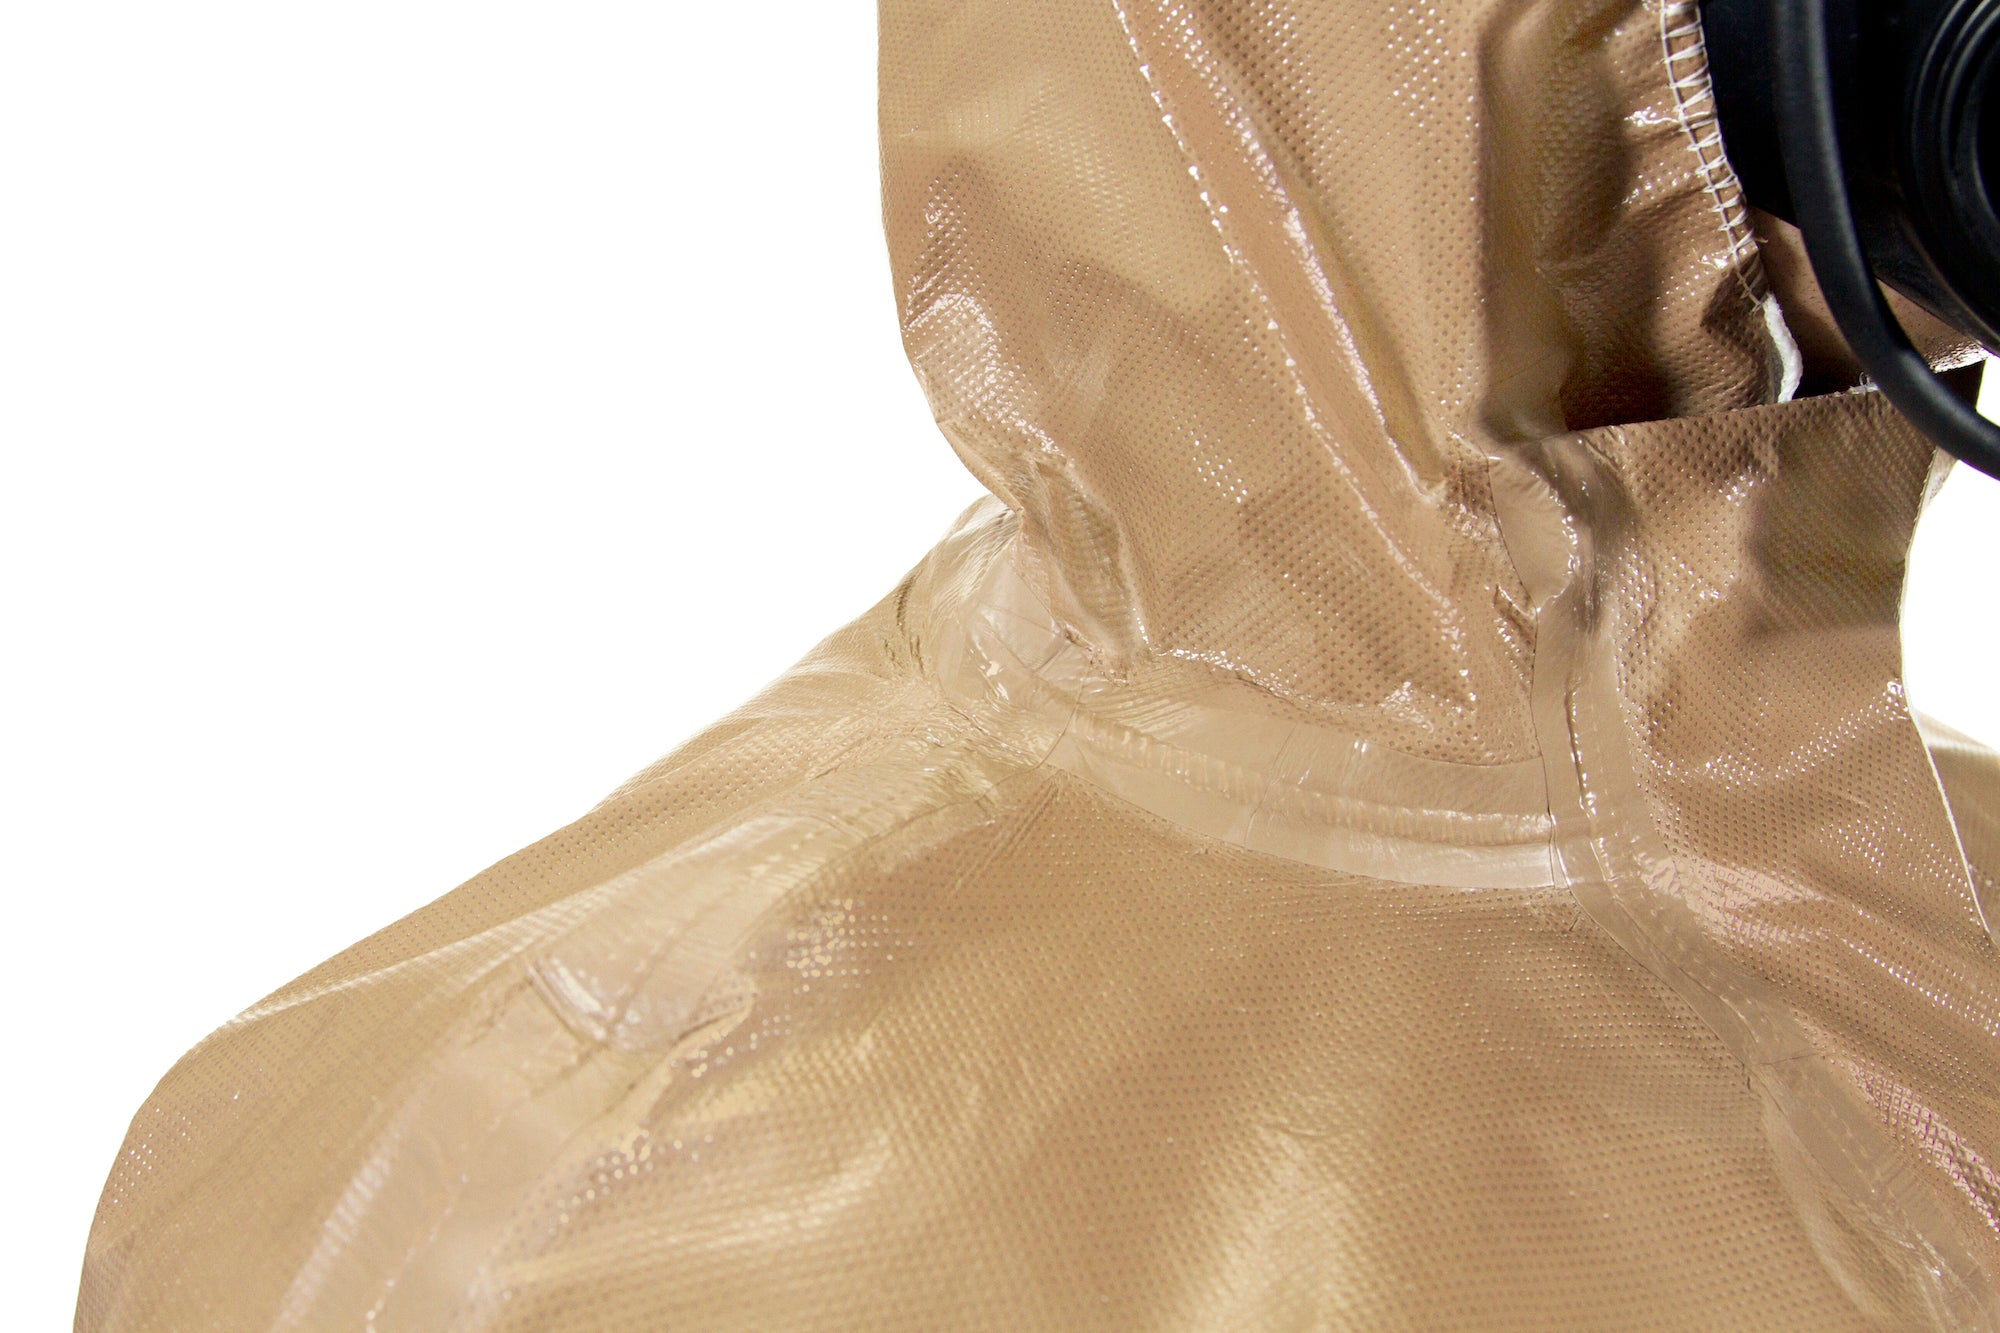 Seams of the HAZ-SUIT HAZMAT Suit